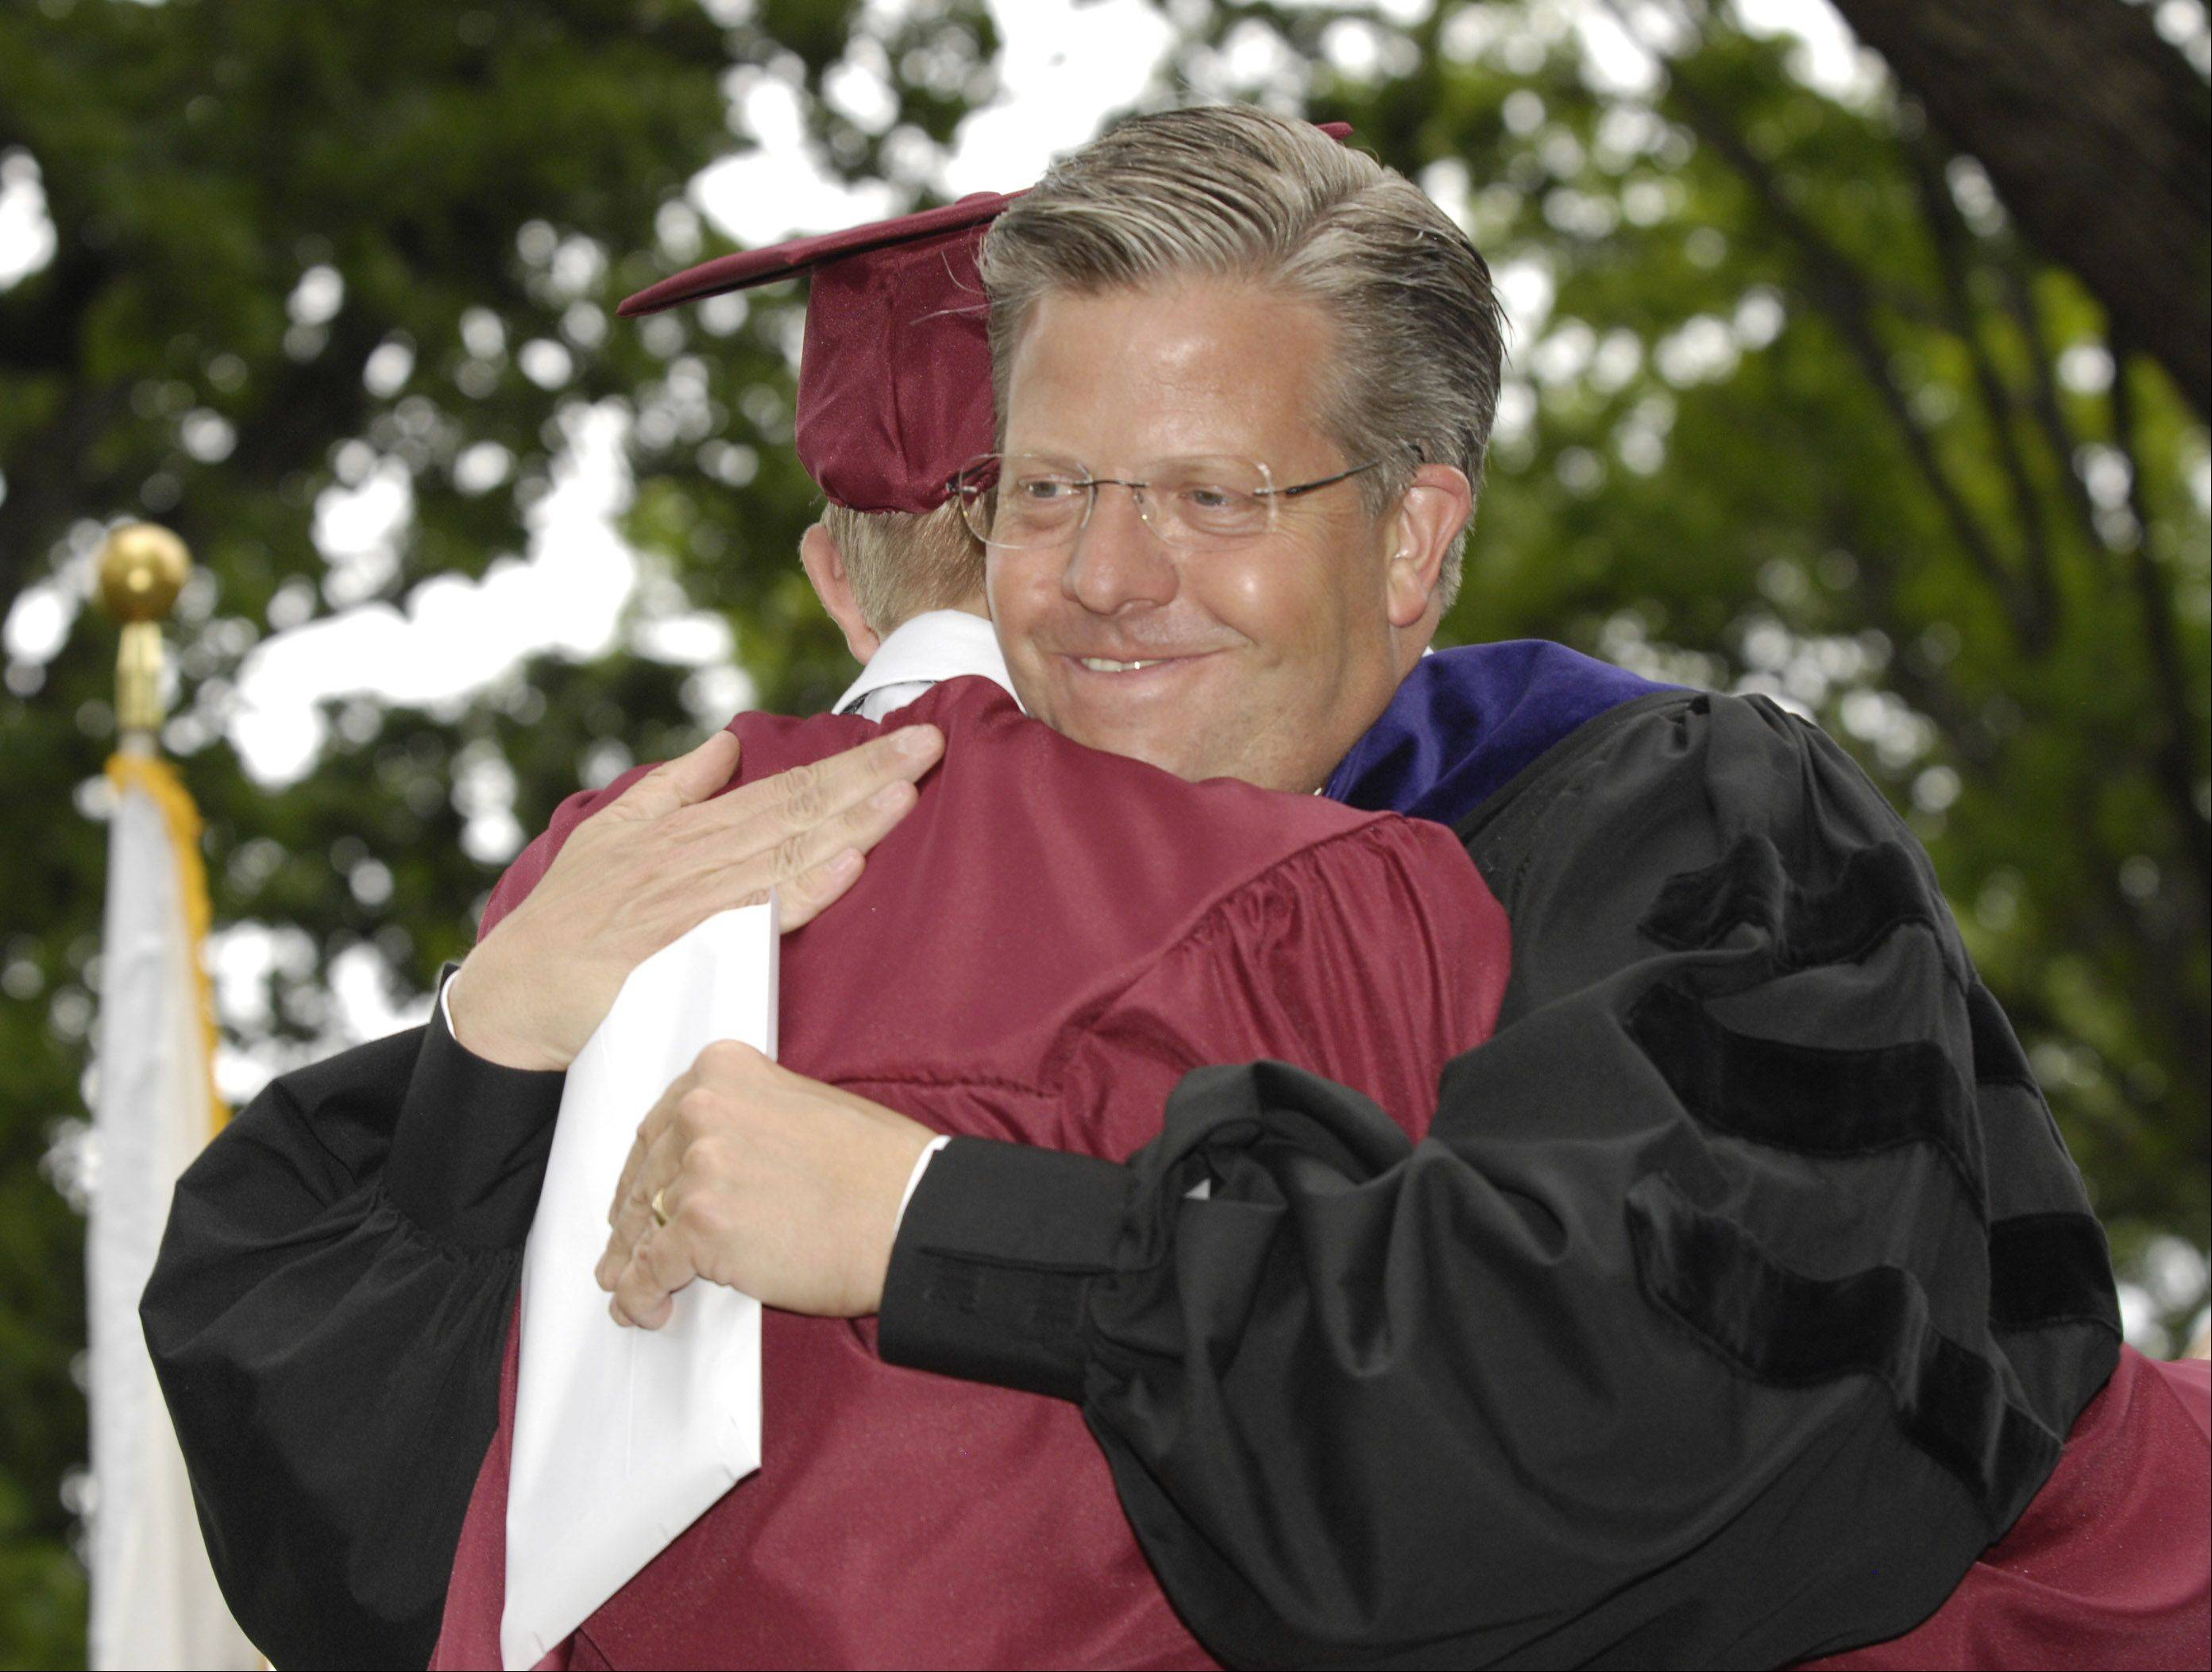 U.S. Congressman Randy Hultgren was able to present his son Karsten with his diploma after giving the keynote address at the Wheaton Academy graduation, Sunday.